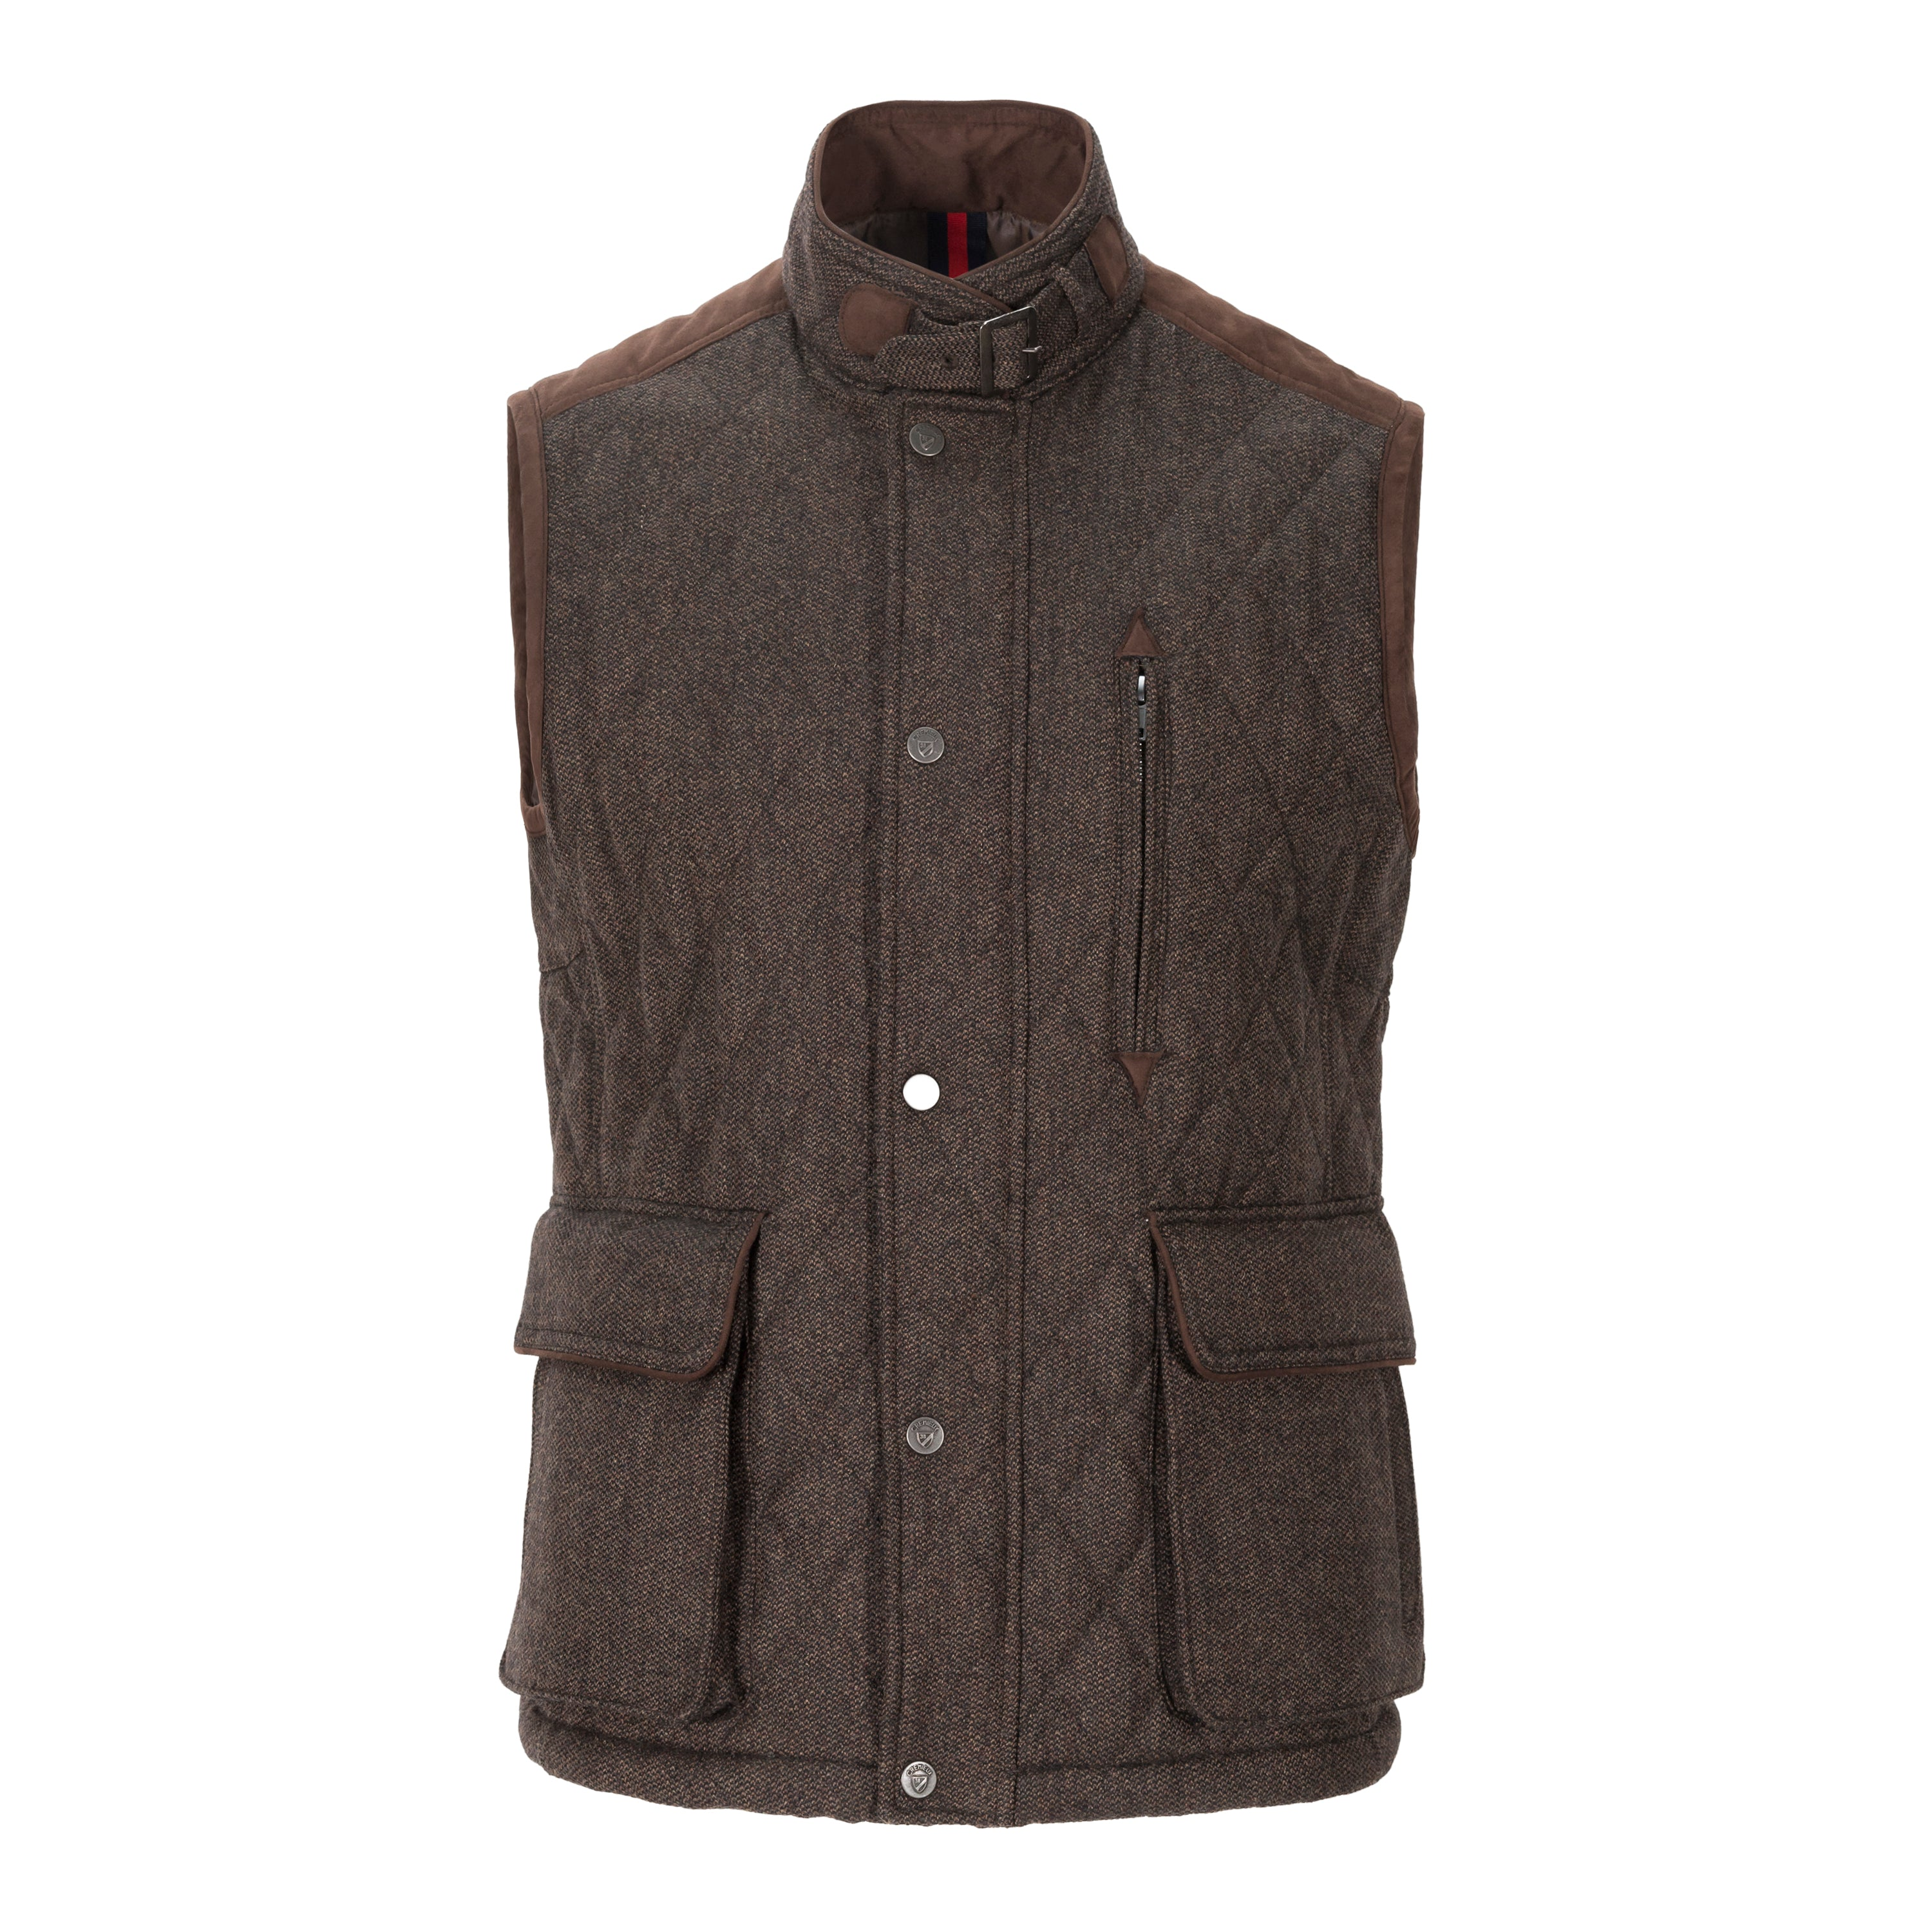 d0d4f41b61 DANIEL CREMIEUX QUILTED WOOL VEST – Miltons - The Store for Men